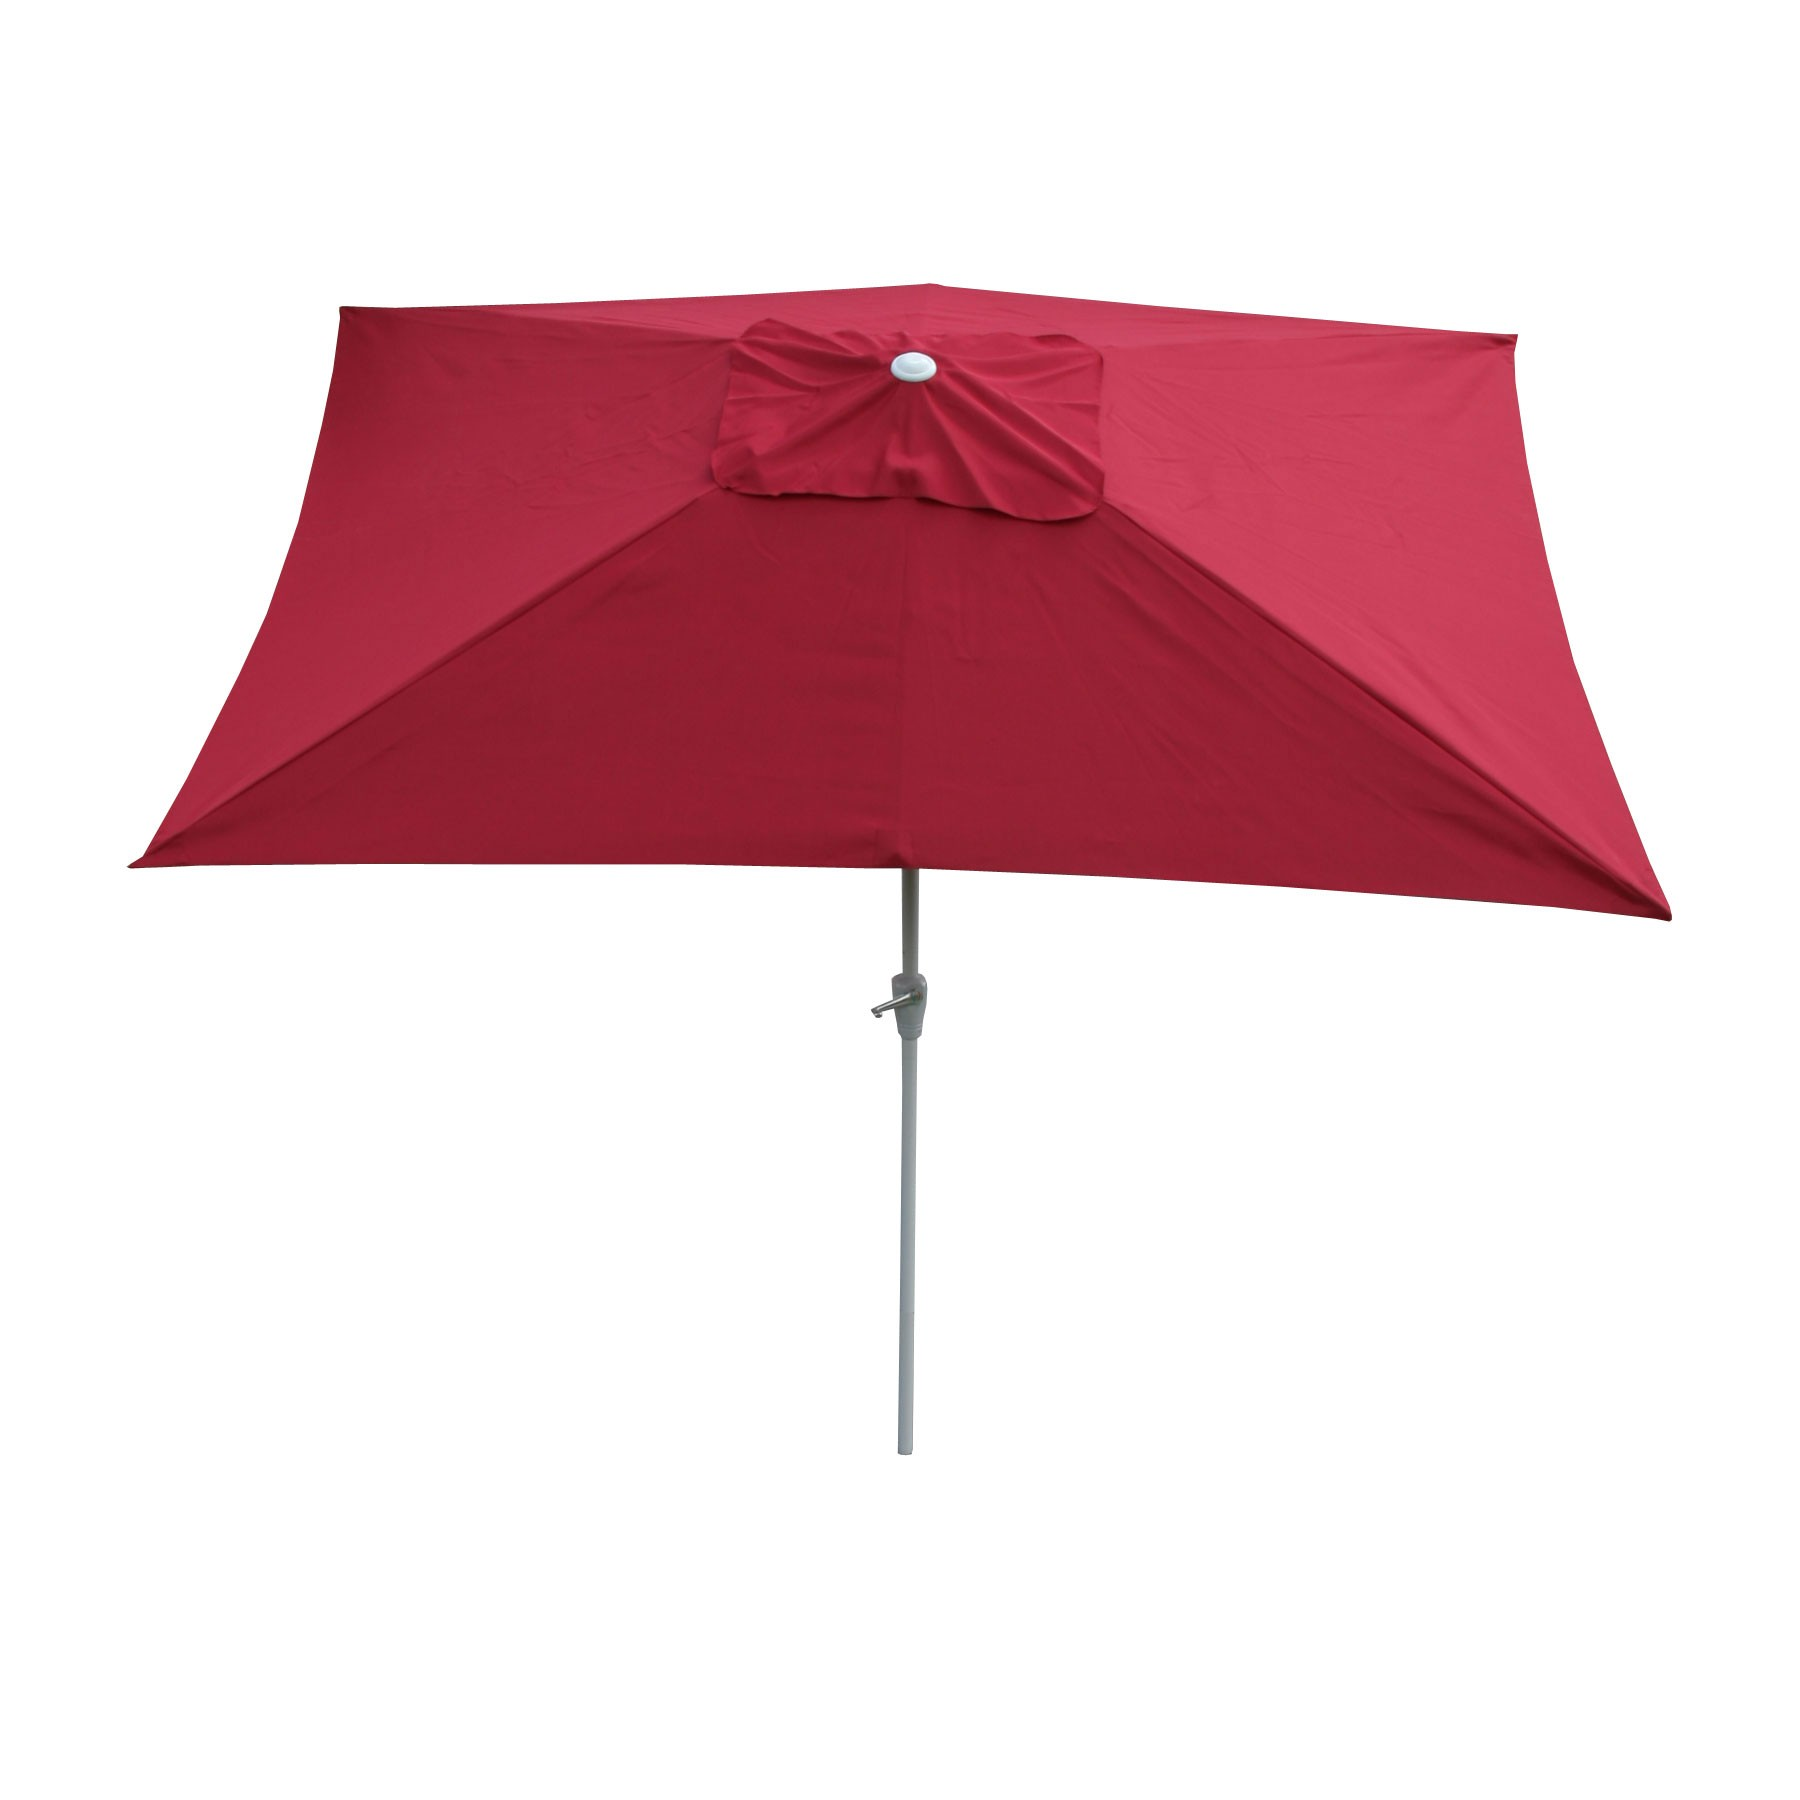 Surprising Parasol Parapluie Alu Garden Parapluie N Xm Rectangulaire  With Lovable Parasol Parapluie Alu Garden Parapluie N Xm Rectangulaire Pivotant  Inox  Bordeaux With Amazing Alpine Garden Plants Also Tsokkos Gardens Cyprus In Addition Bronze Garden Tools And How Do I Keep Cats Off My Garden As Well As Grey Garden Fence Additionally Rattan Garden Furniture With Parasol From Nuancemeublecom With   Lovable Parasol Parapluie Alu Garden Parapluie N Xm Rectangulaire  With Amazing Parasol Parapluie Alu Garden Parapluie N Xm Rectangulaire Pivotant  Inox  Bordeaux And Surprising Alpine Garden Plants Also Tsokkos Gardens Cyprus In Addition Bronze Garden Tools From Nuancemeublecom